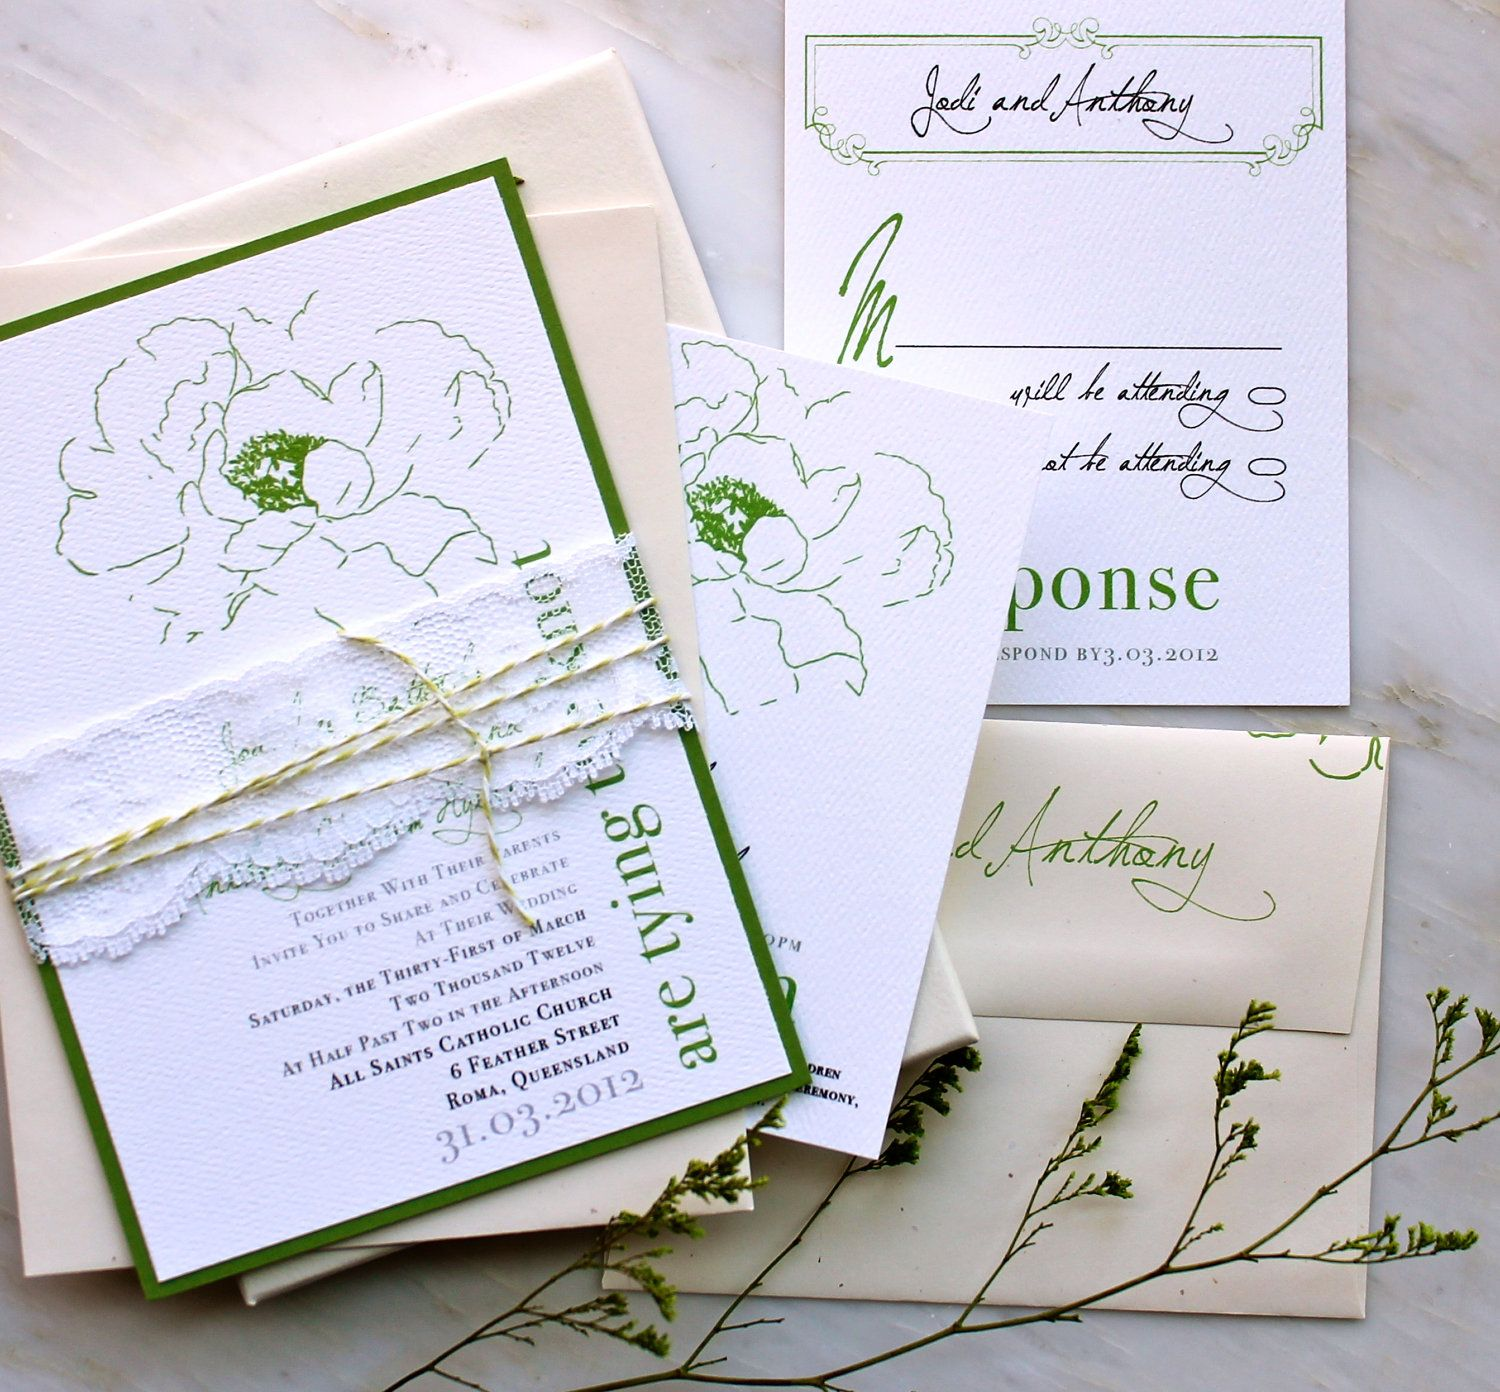 Simple green lace wedding invitations with green ivory baker simple green lace wedding invitations with green ivory baker twine purchase for best wedding invitationshandmade monicamarmolfo Image collections